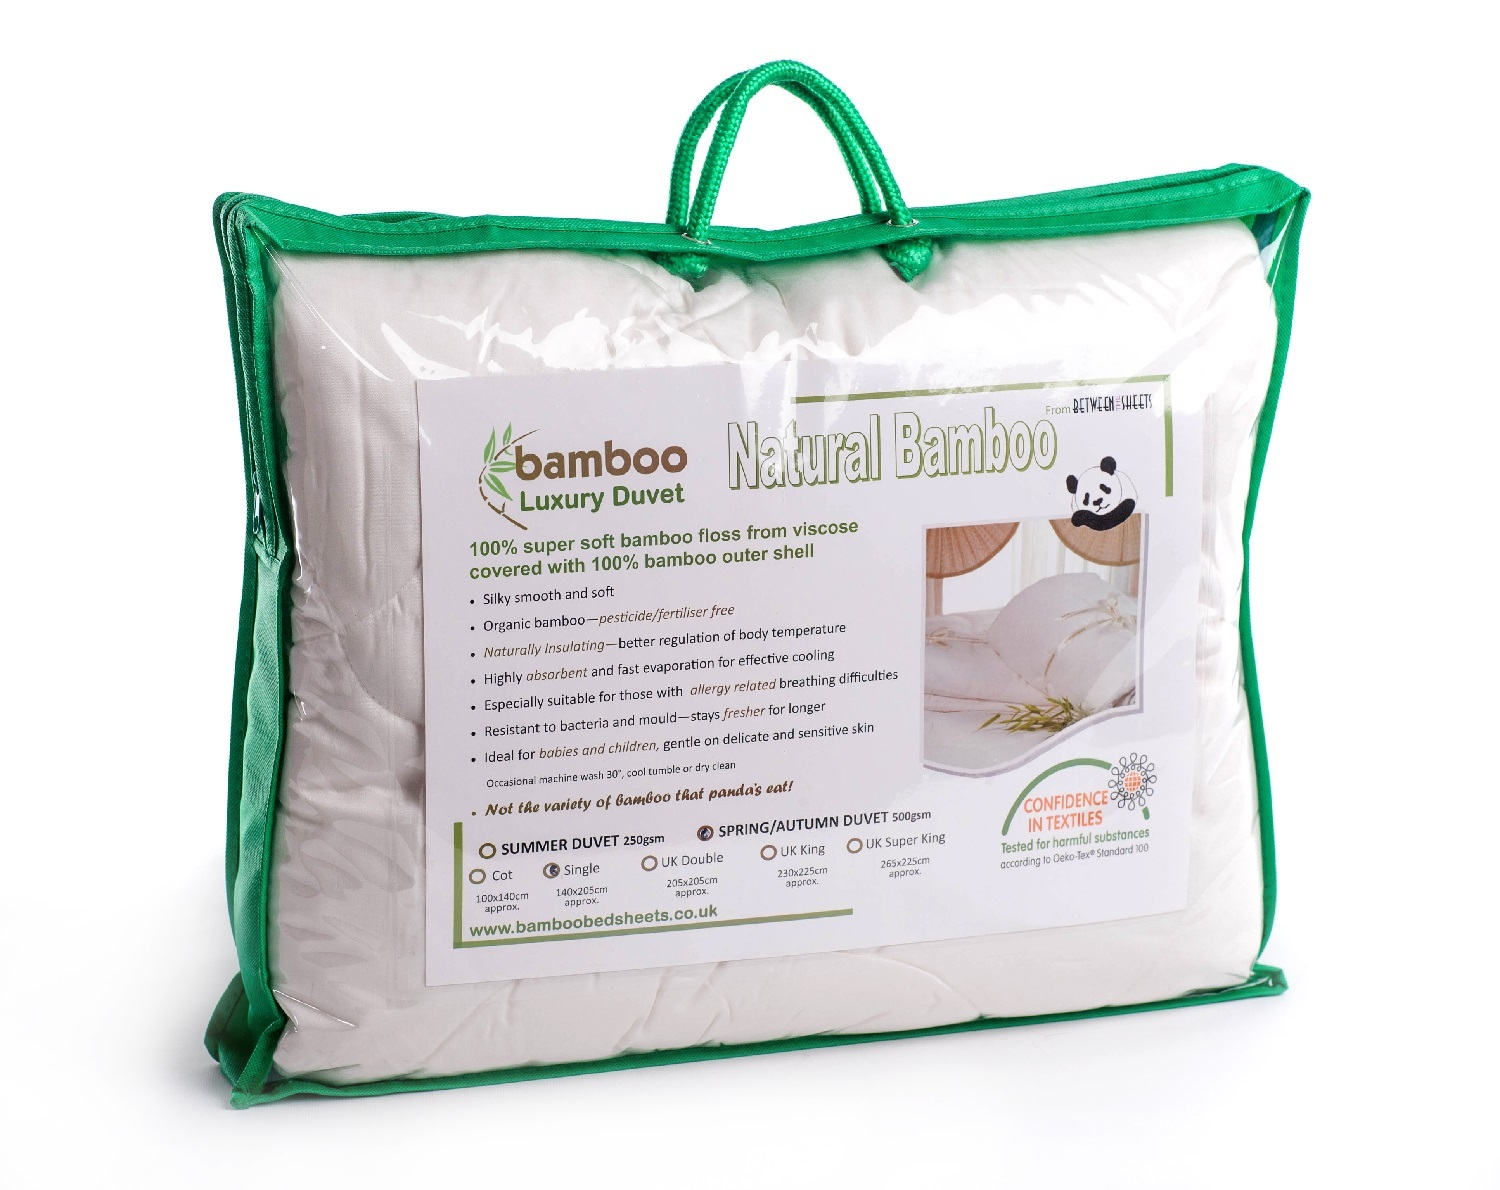 Between The Sheets Bamboo Duvet 500gsm